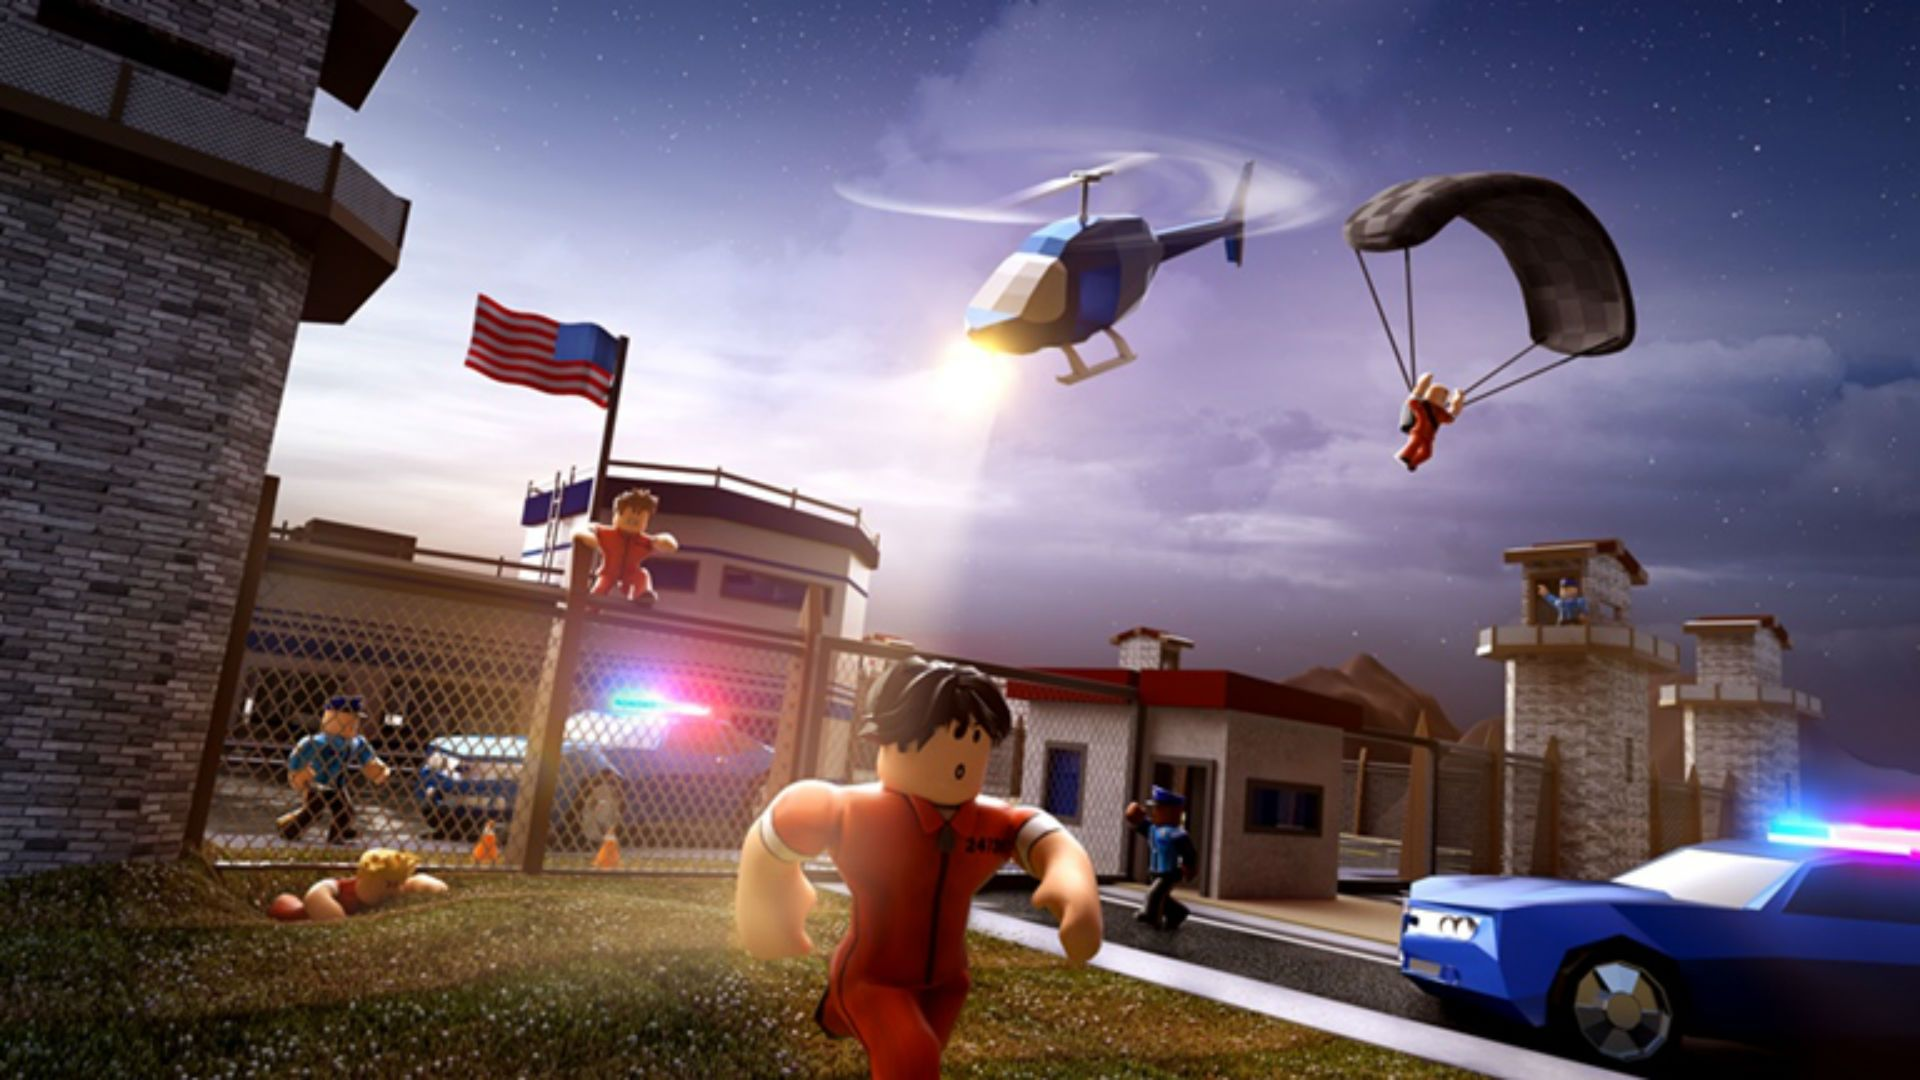 Roblox Murder Island All Characters Roblox Music Codes Roblox Music Codes 2020 In 2020 Roblox Roblox Download Games Roblox